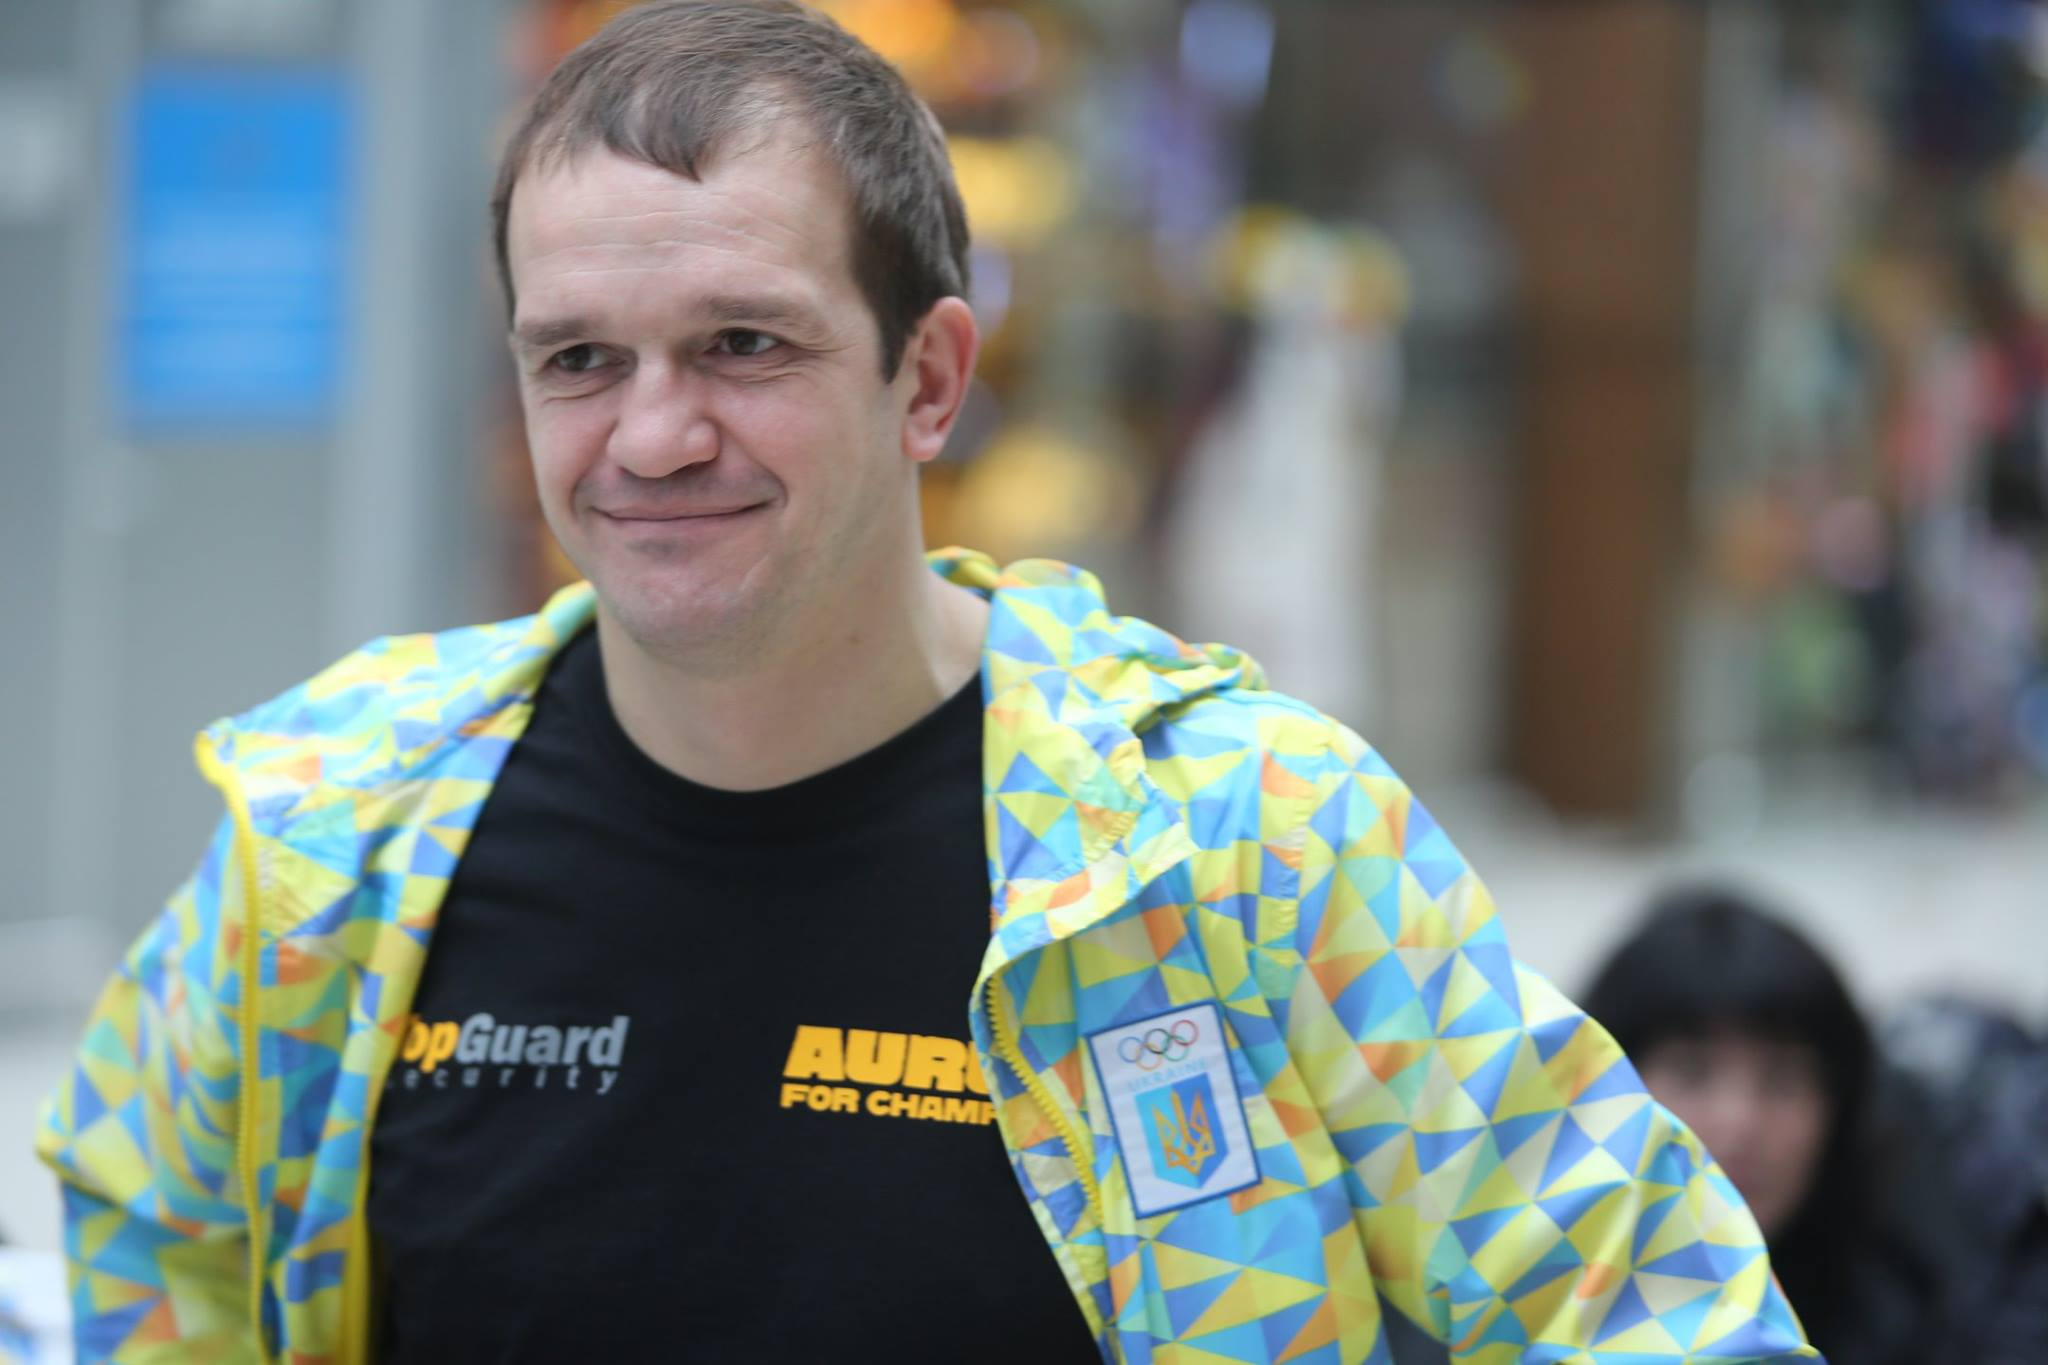 National team of Ukraine at MMA Championship. Head coach of the national MMA team – Alexandr Dudochkin.